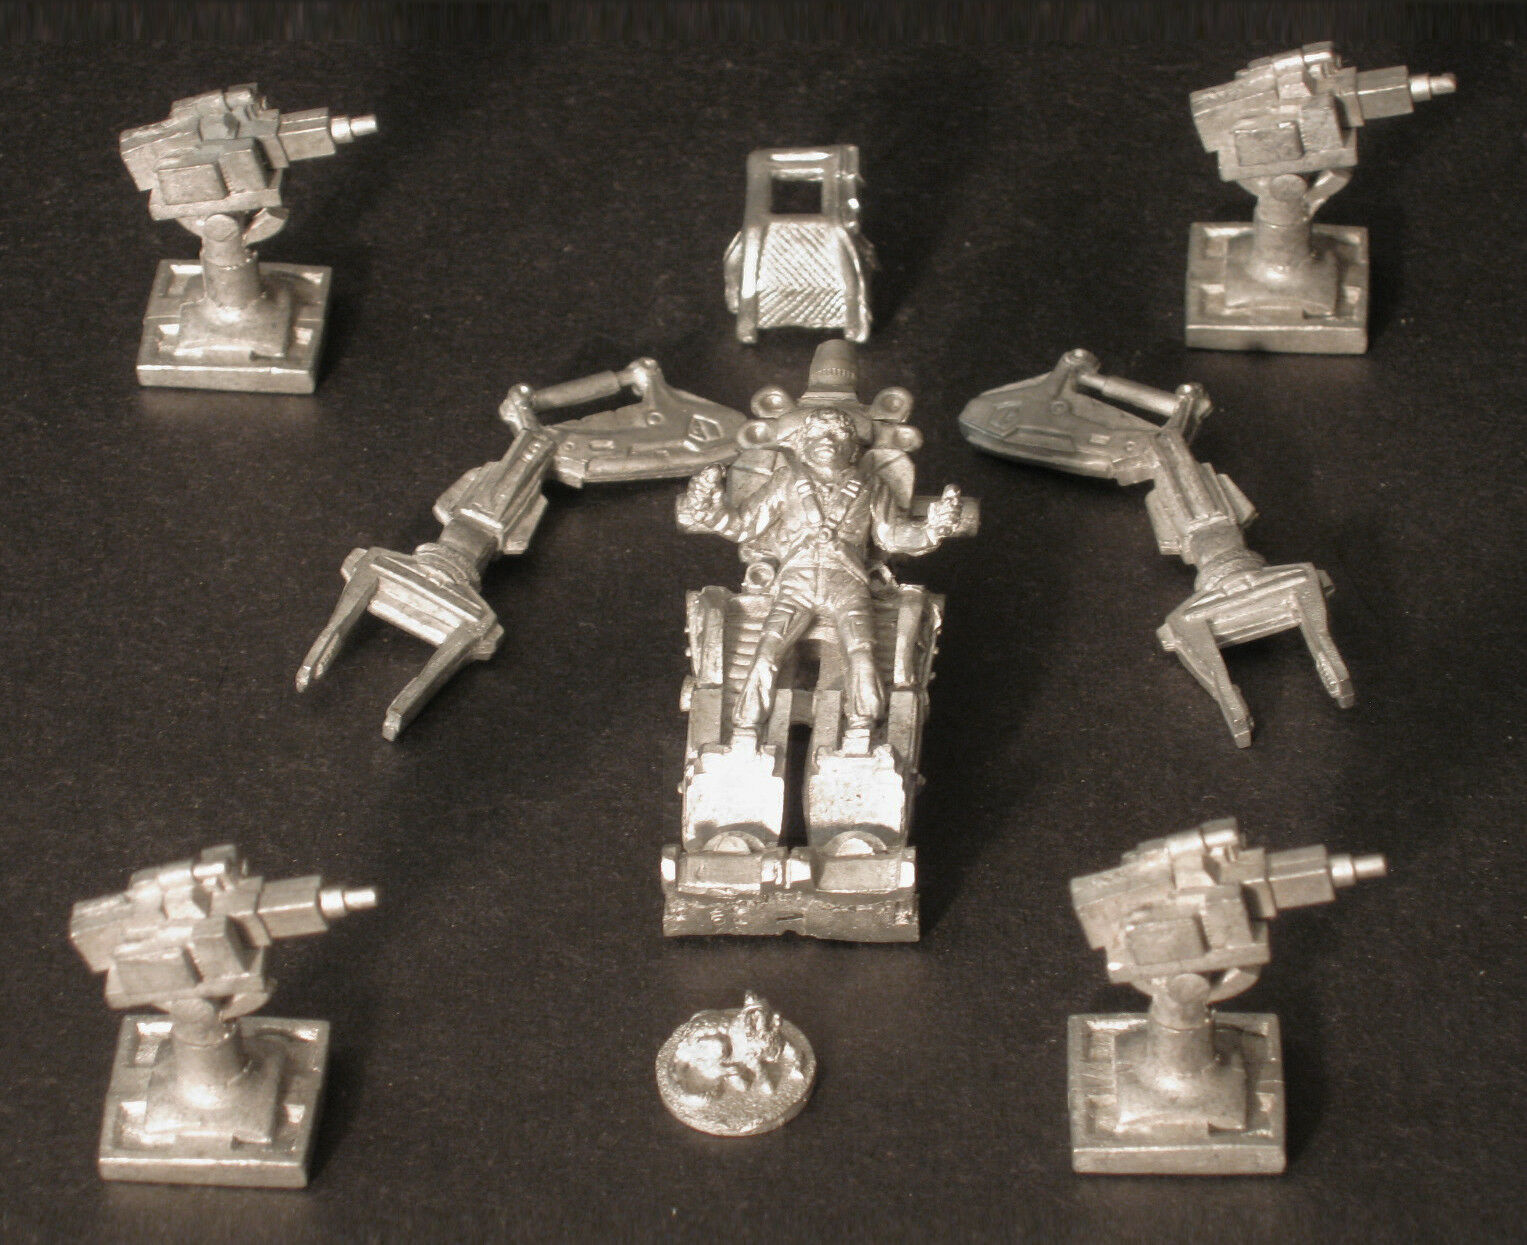 Aliens Power Loader Miniatures Set, Set, Set, 25mm Figures Leading Edge 20306, MegaExtras  c80ba0